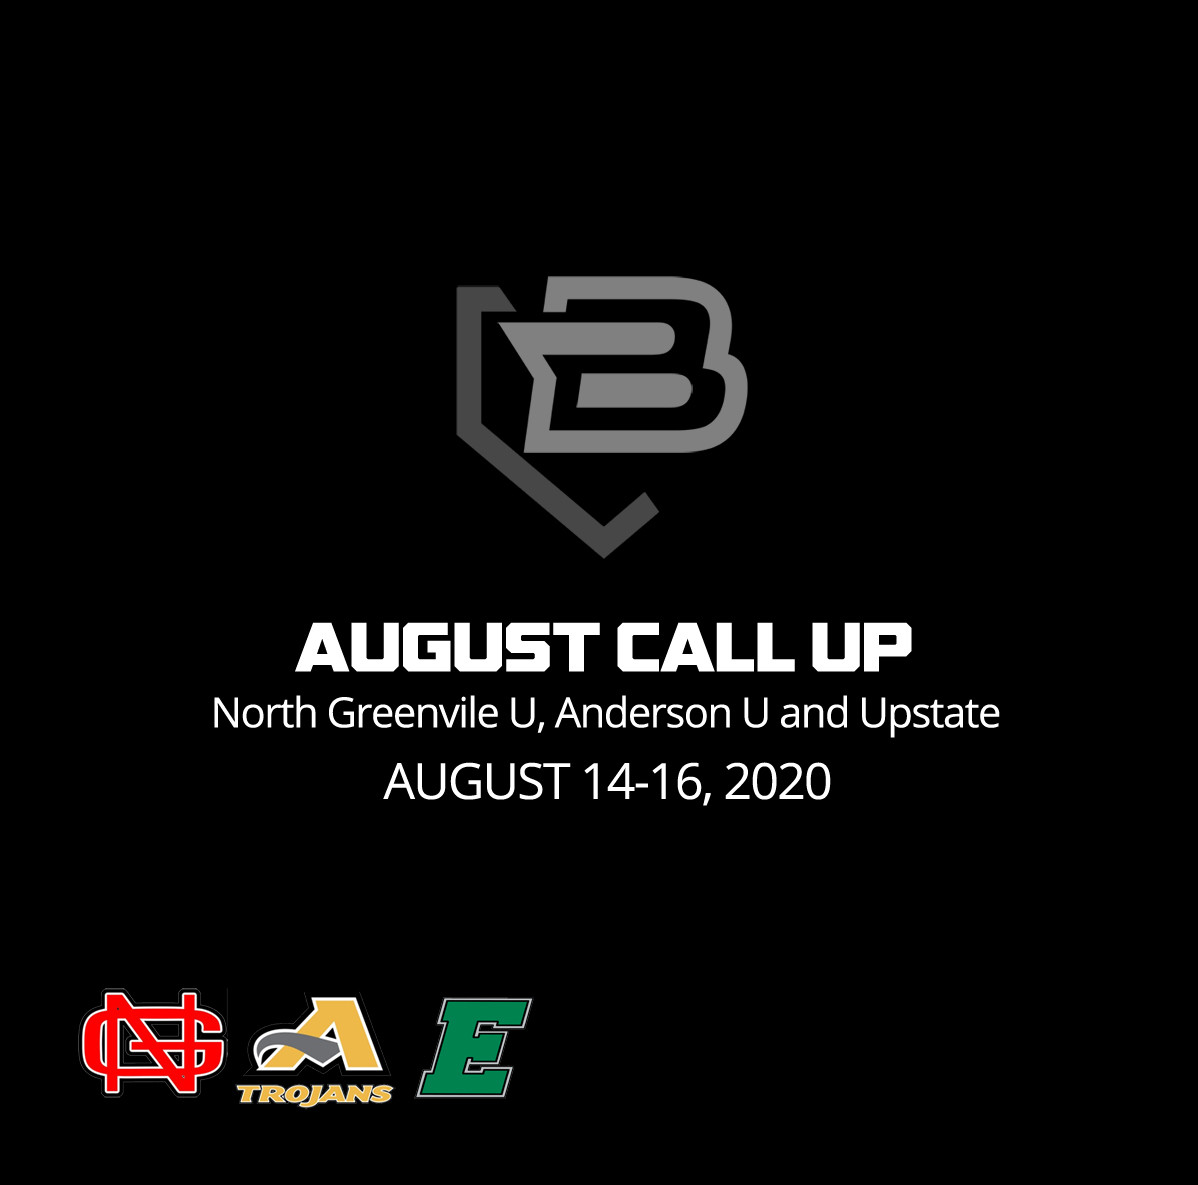 August Call Up